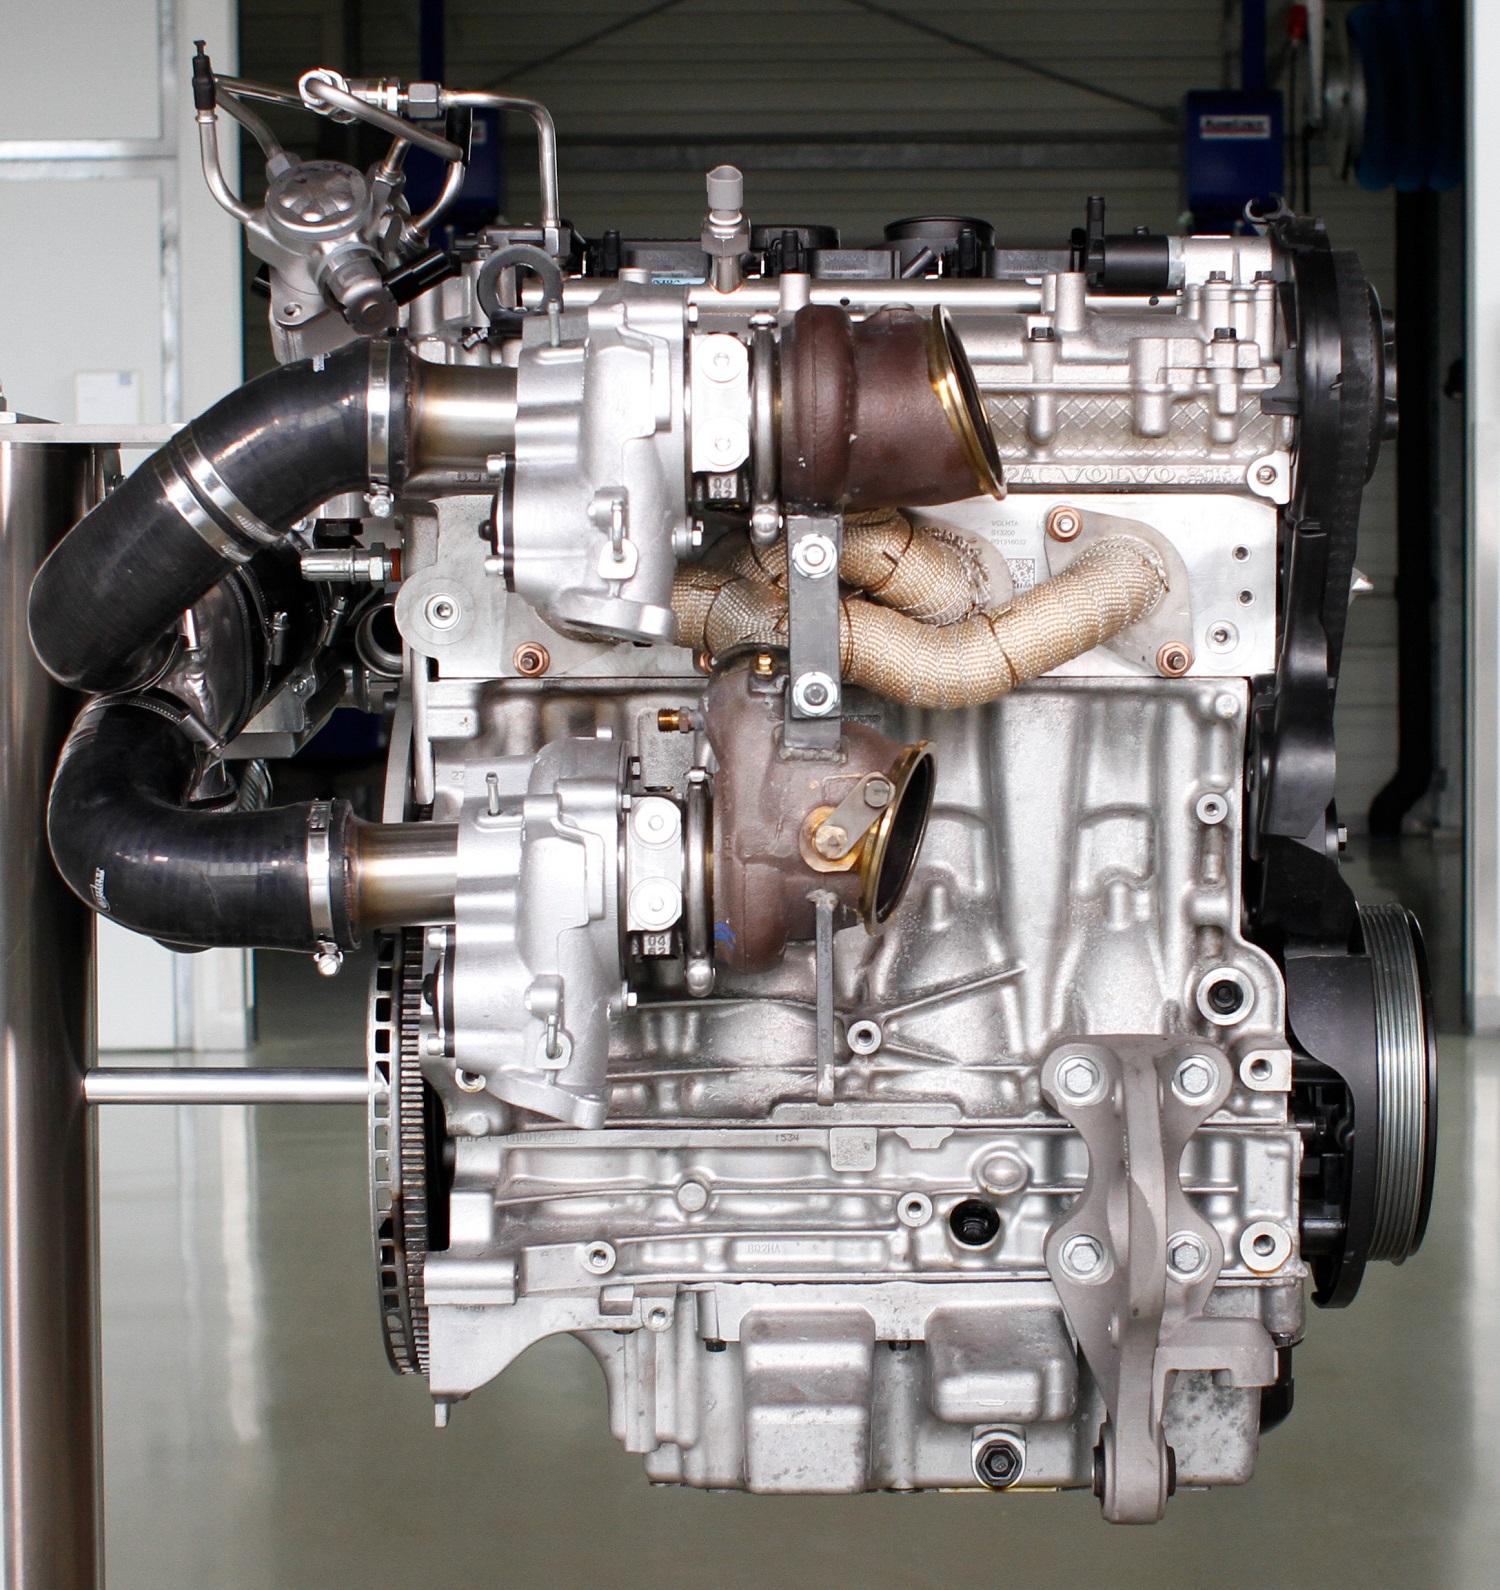 3 turbos for the 4 cylinder high performance volvo engine prototype rh car engineer com